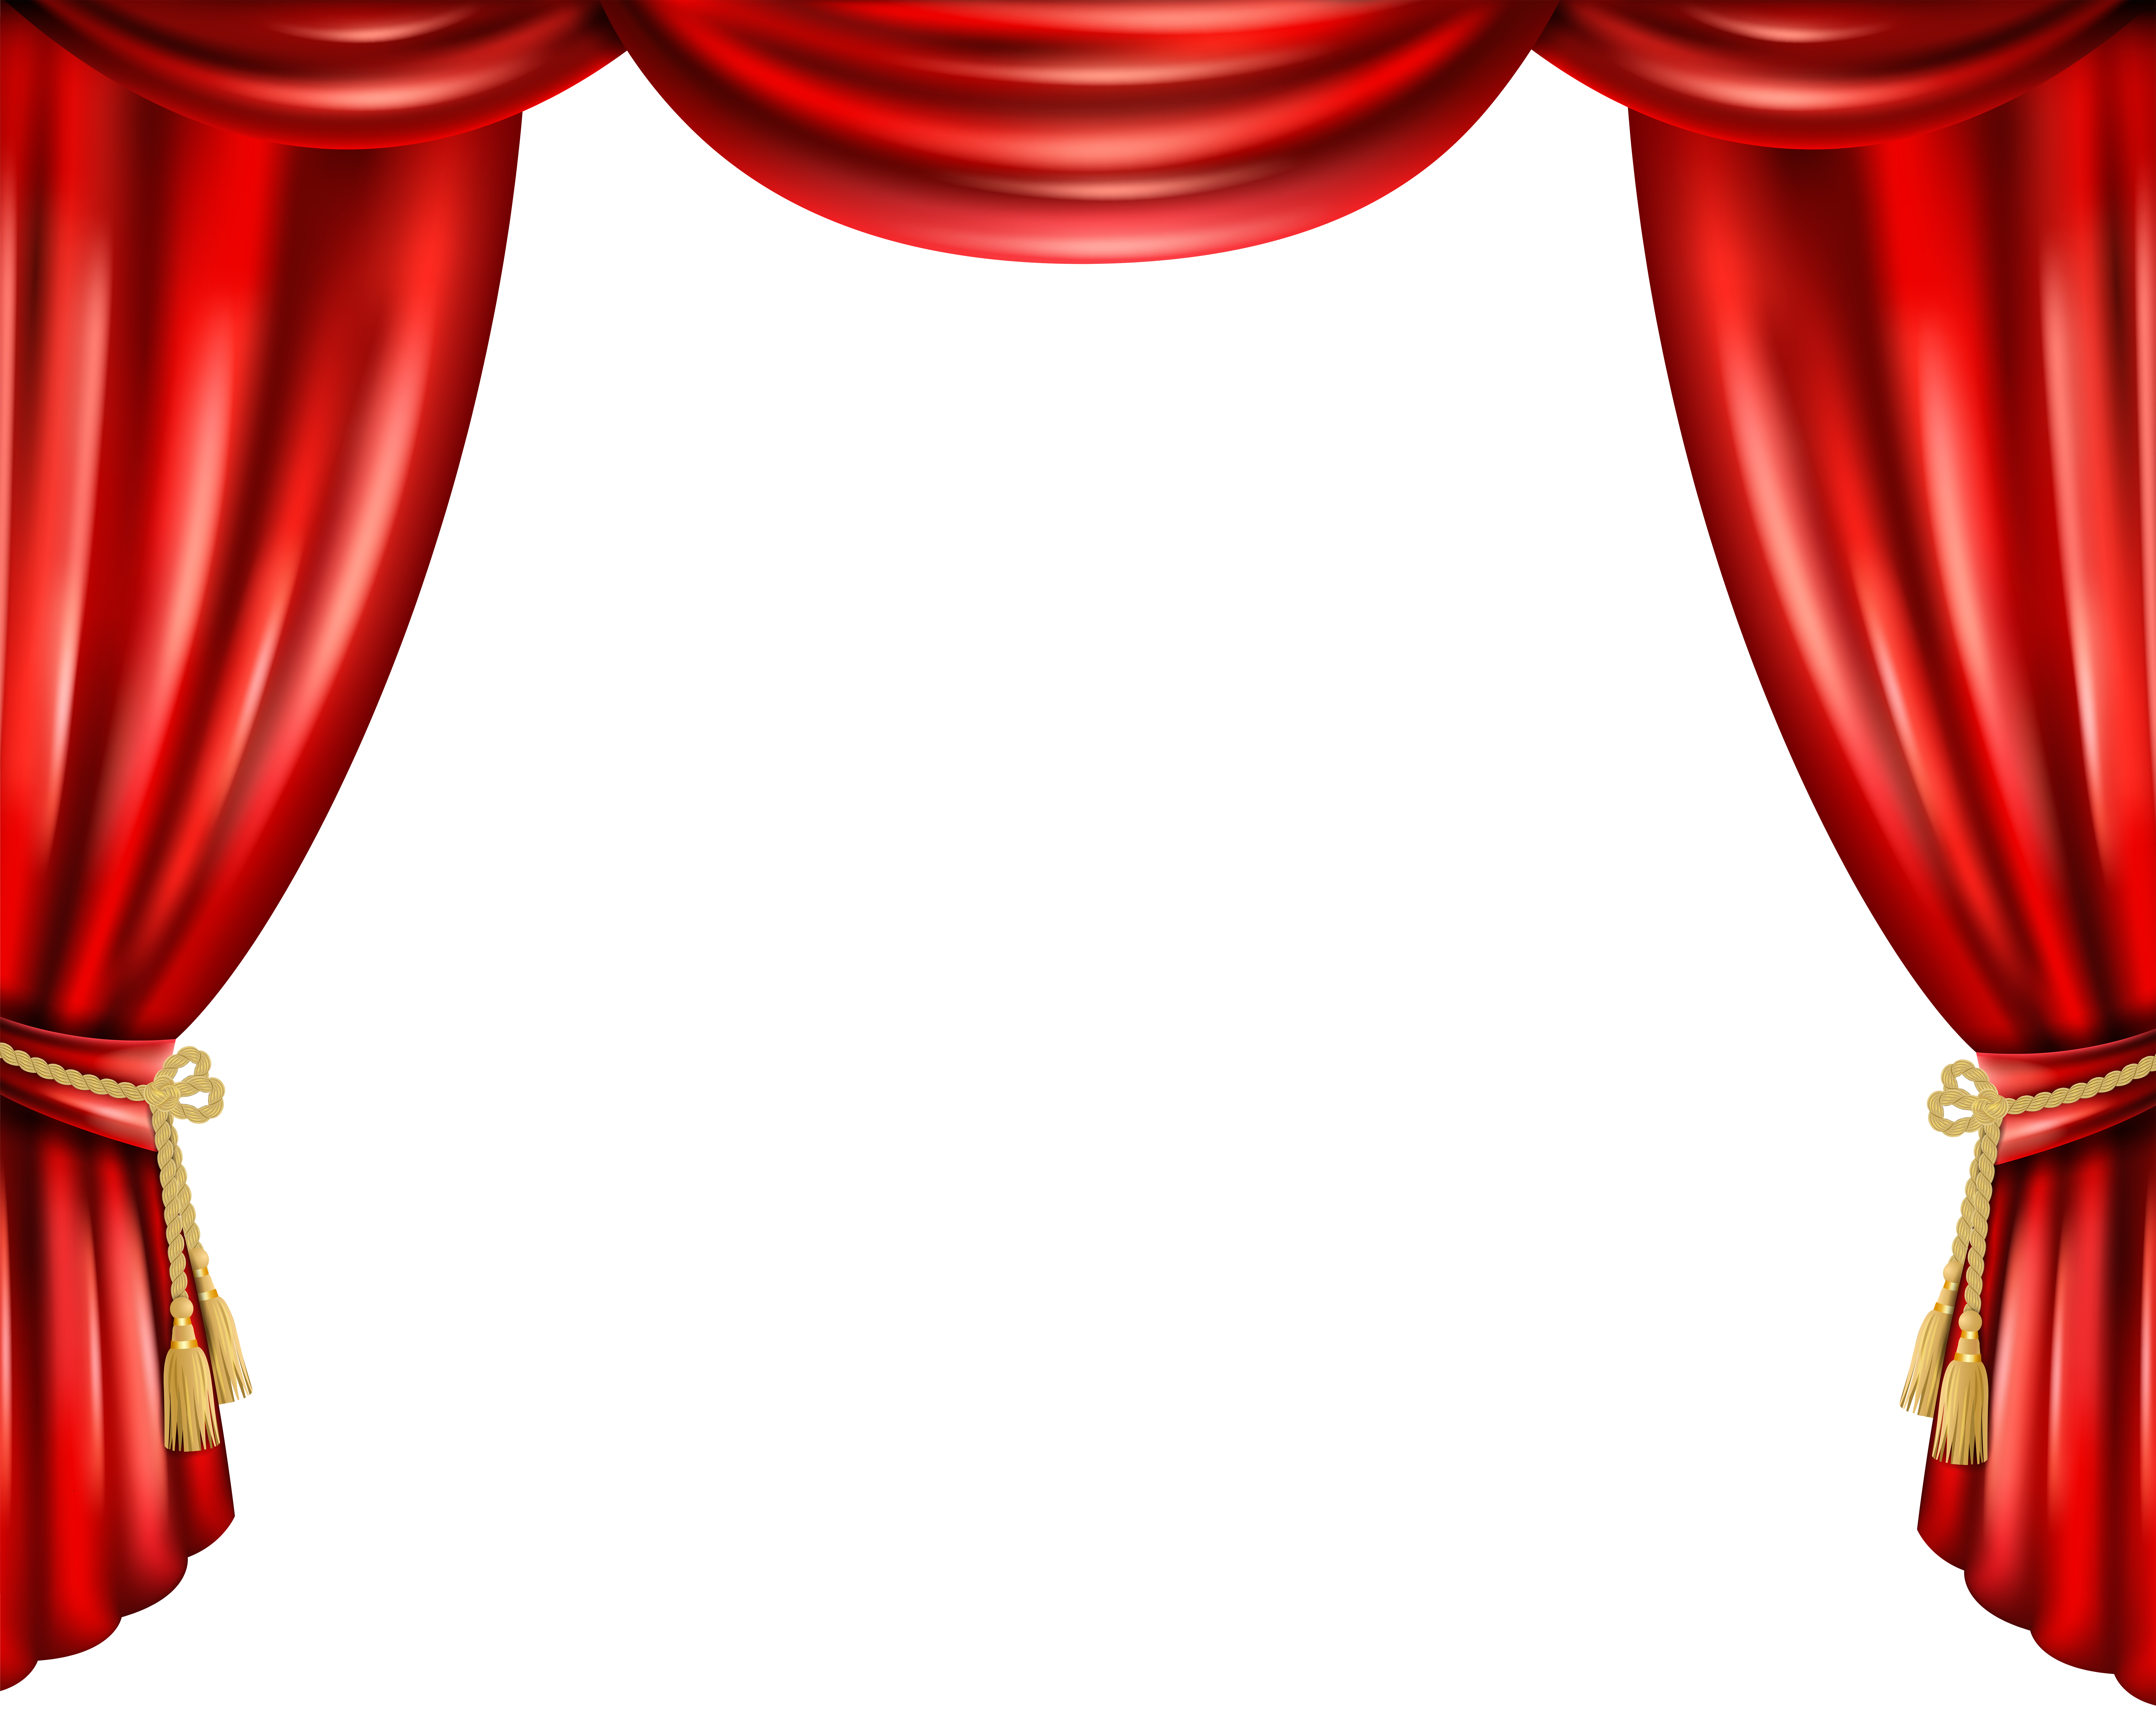 Red Curtain Clipart.